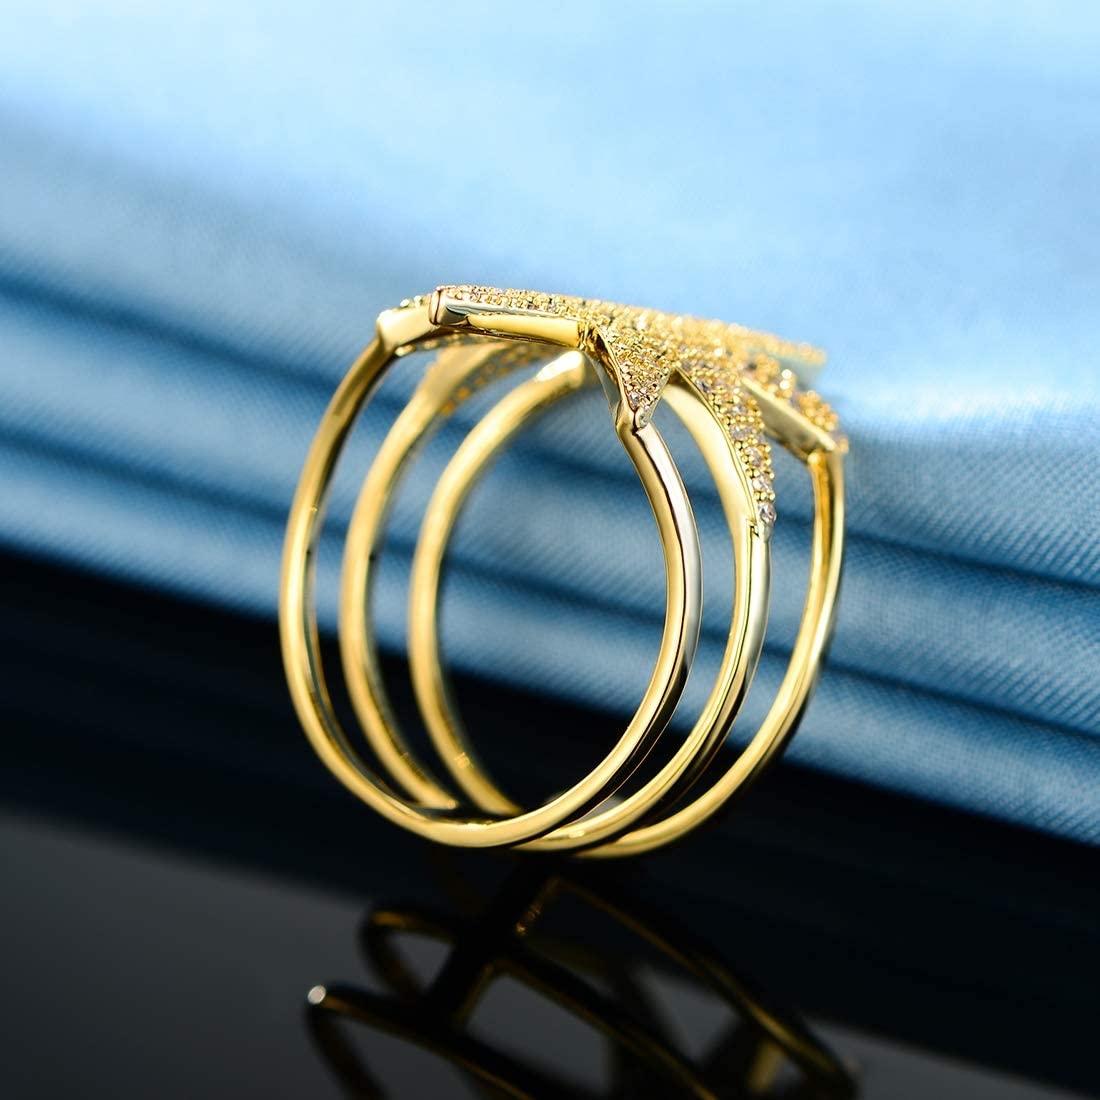 OPALBEST 14K Gold Plated Ring CZ Statement Cocktail Ring Wide Band for Women Men